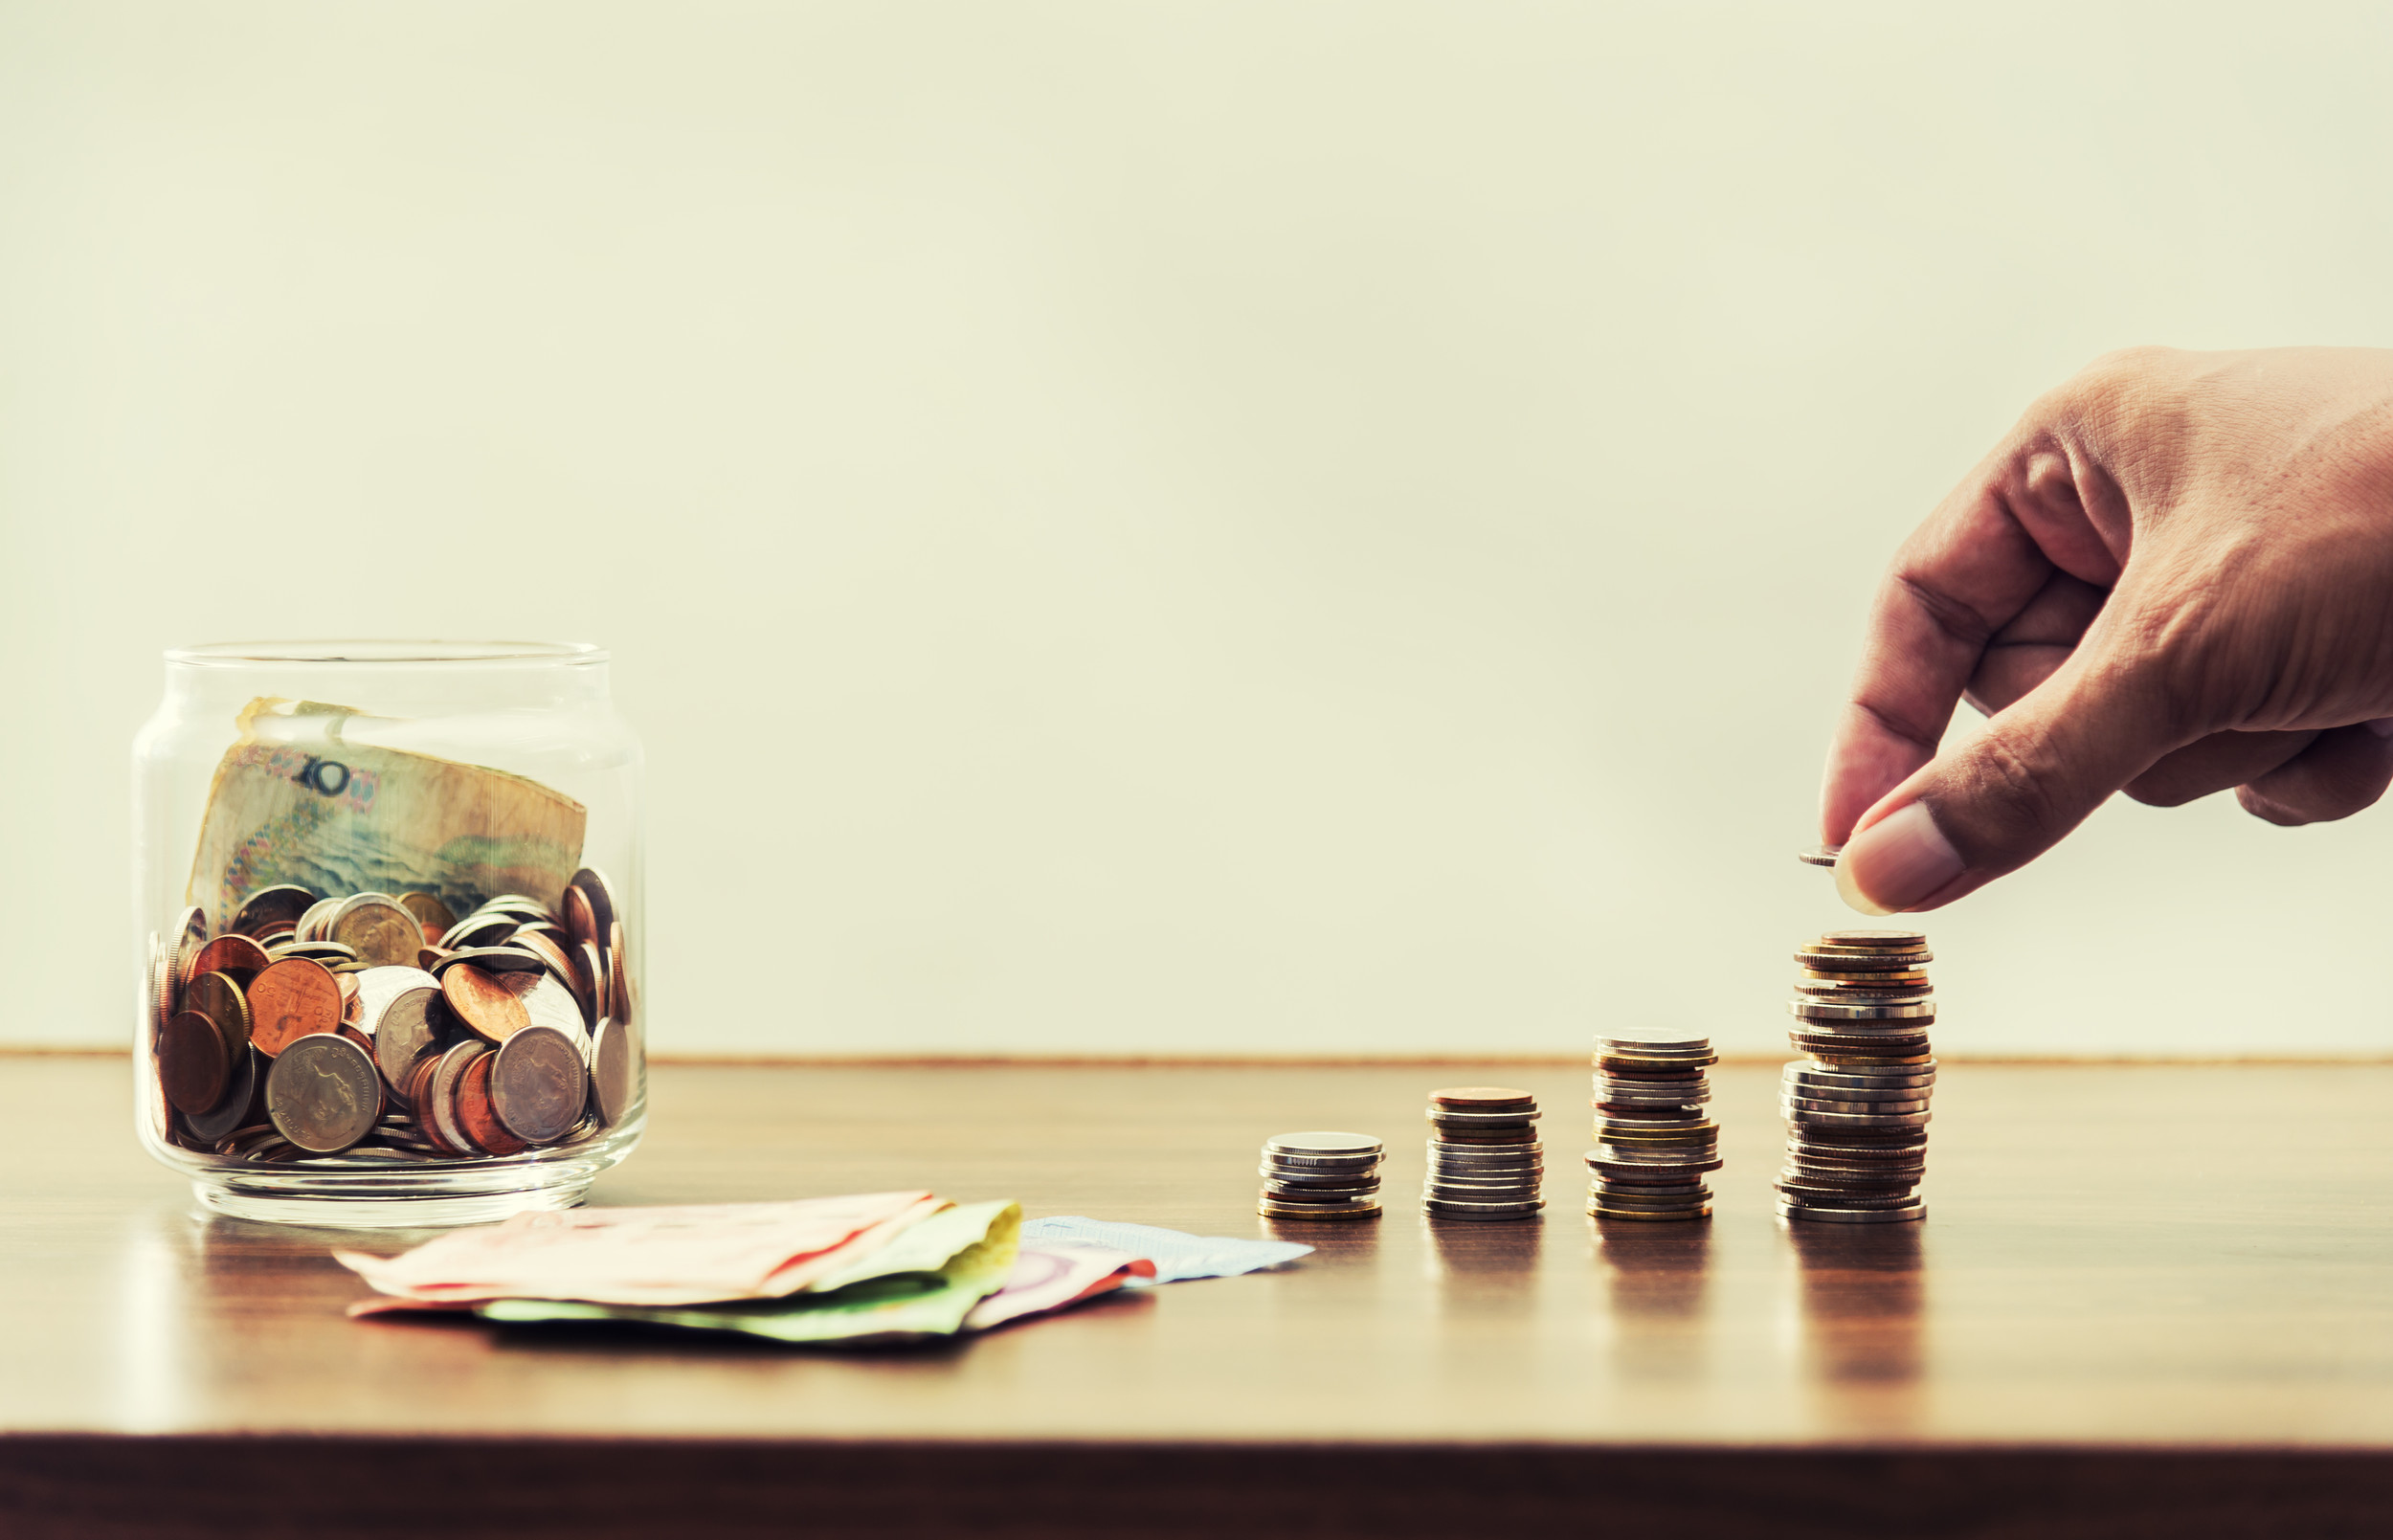 The magic math of paying yourself first